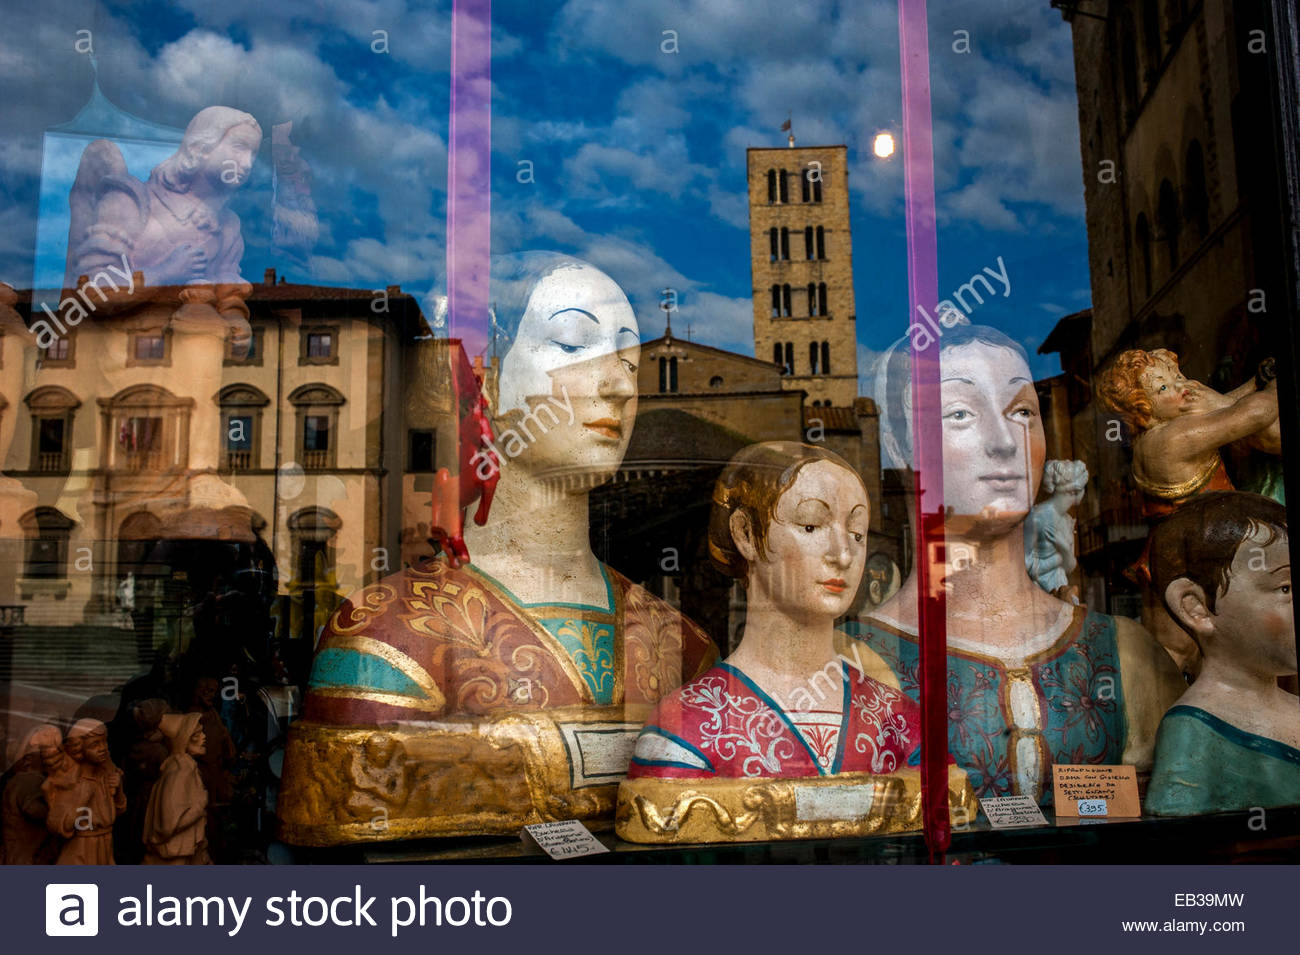 Busts of women in renaissance dress in the window of an